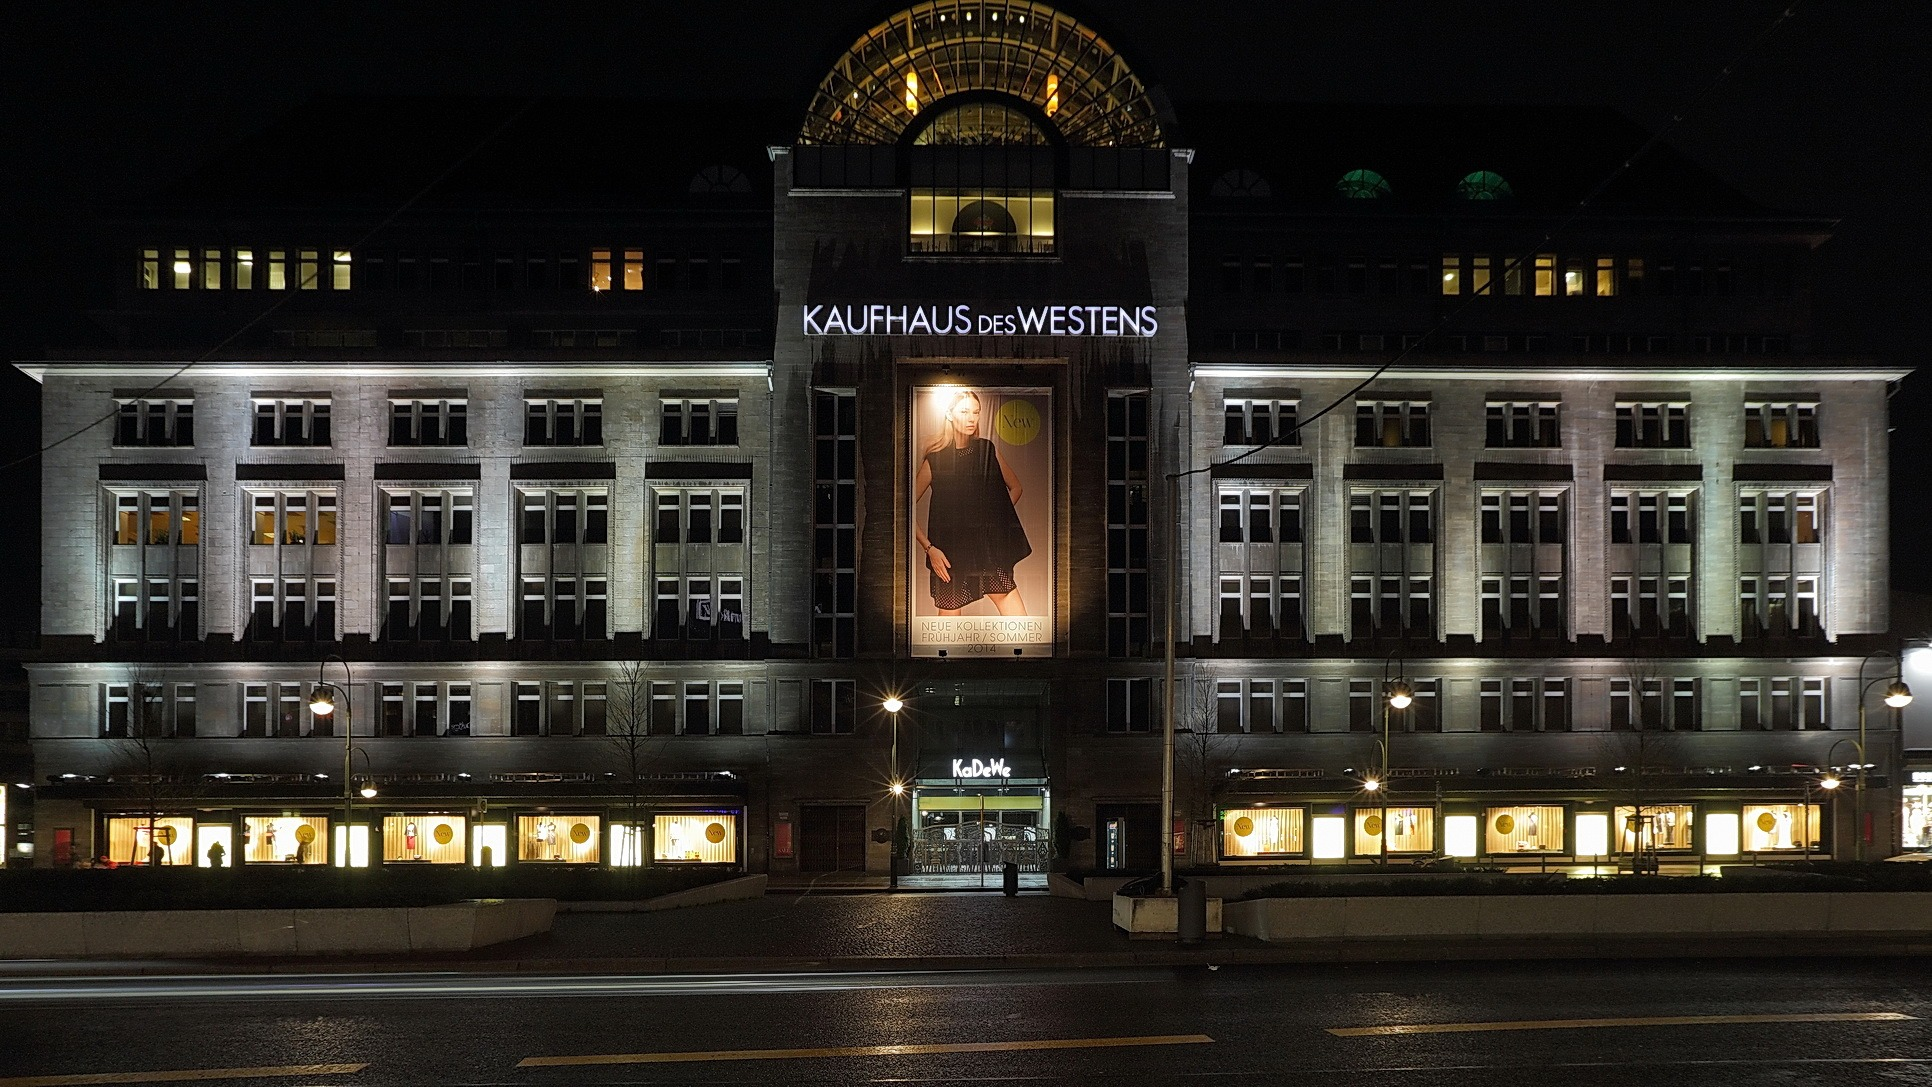 kaufhaus des westens kadewe the historic berlin department store to be renovated by oma. Black Bedroom Furniture Sets. Home Design Ideas